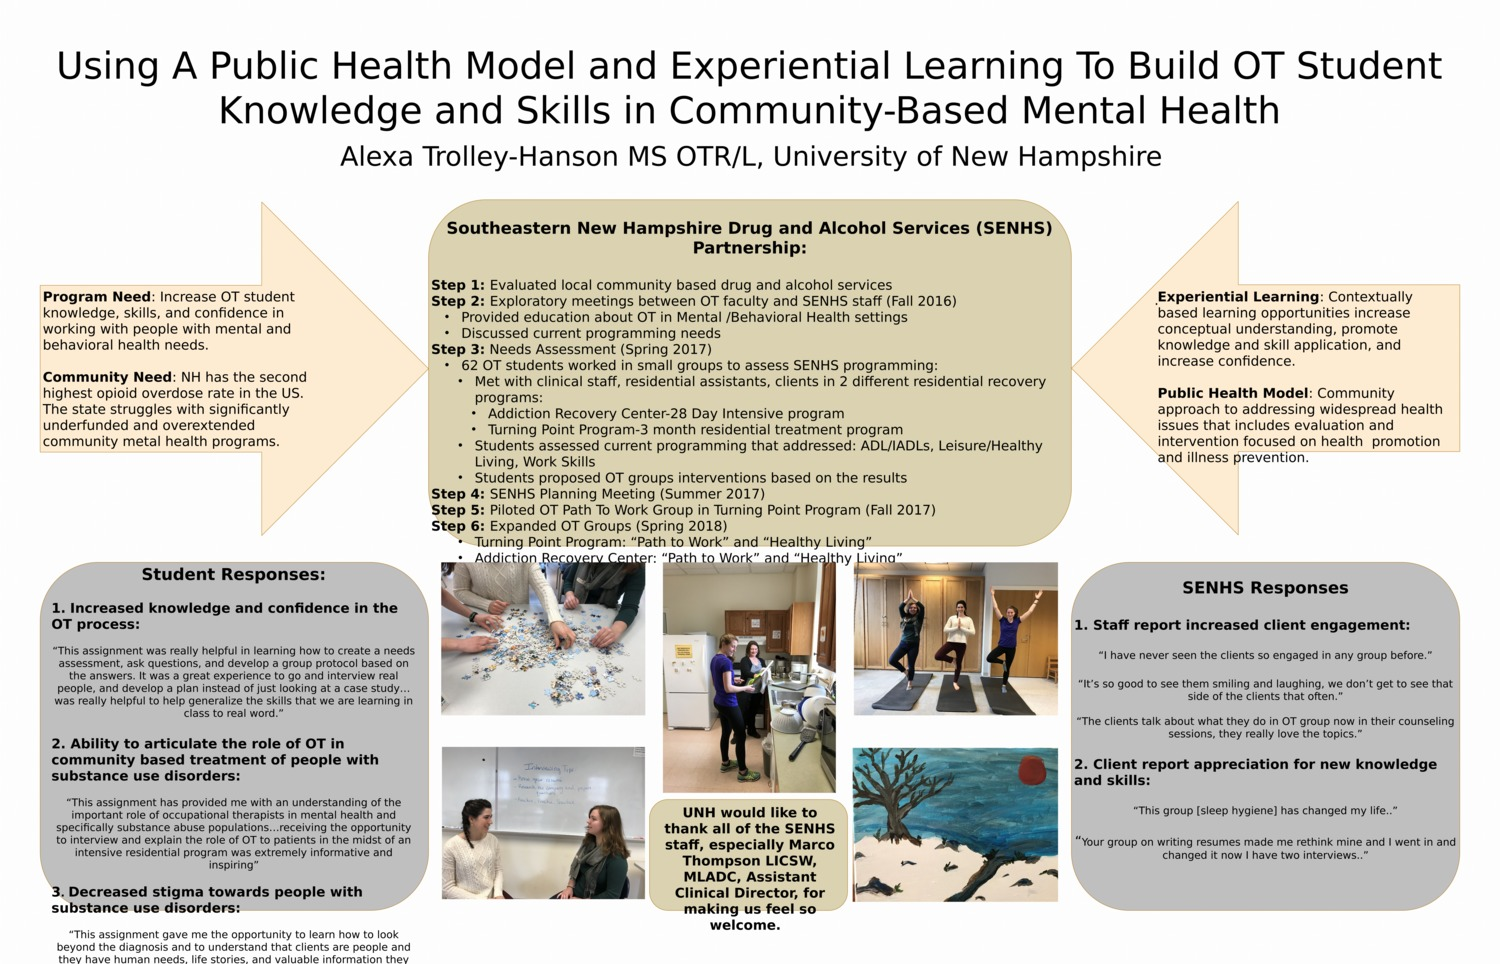 Using A Public Health Model And Experiential Learning To Build Ot Student Knowledge And Skills In Community-Based Mental Health by atrolley